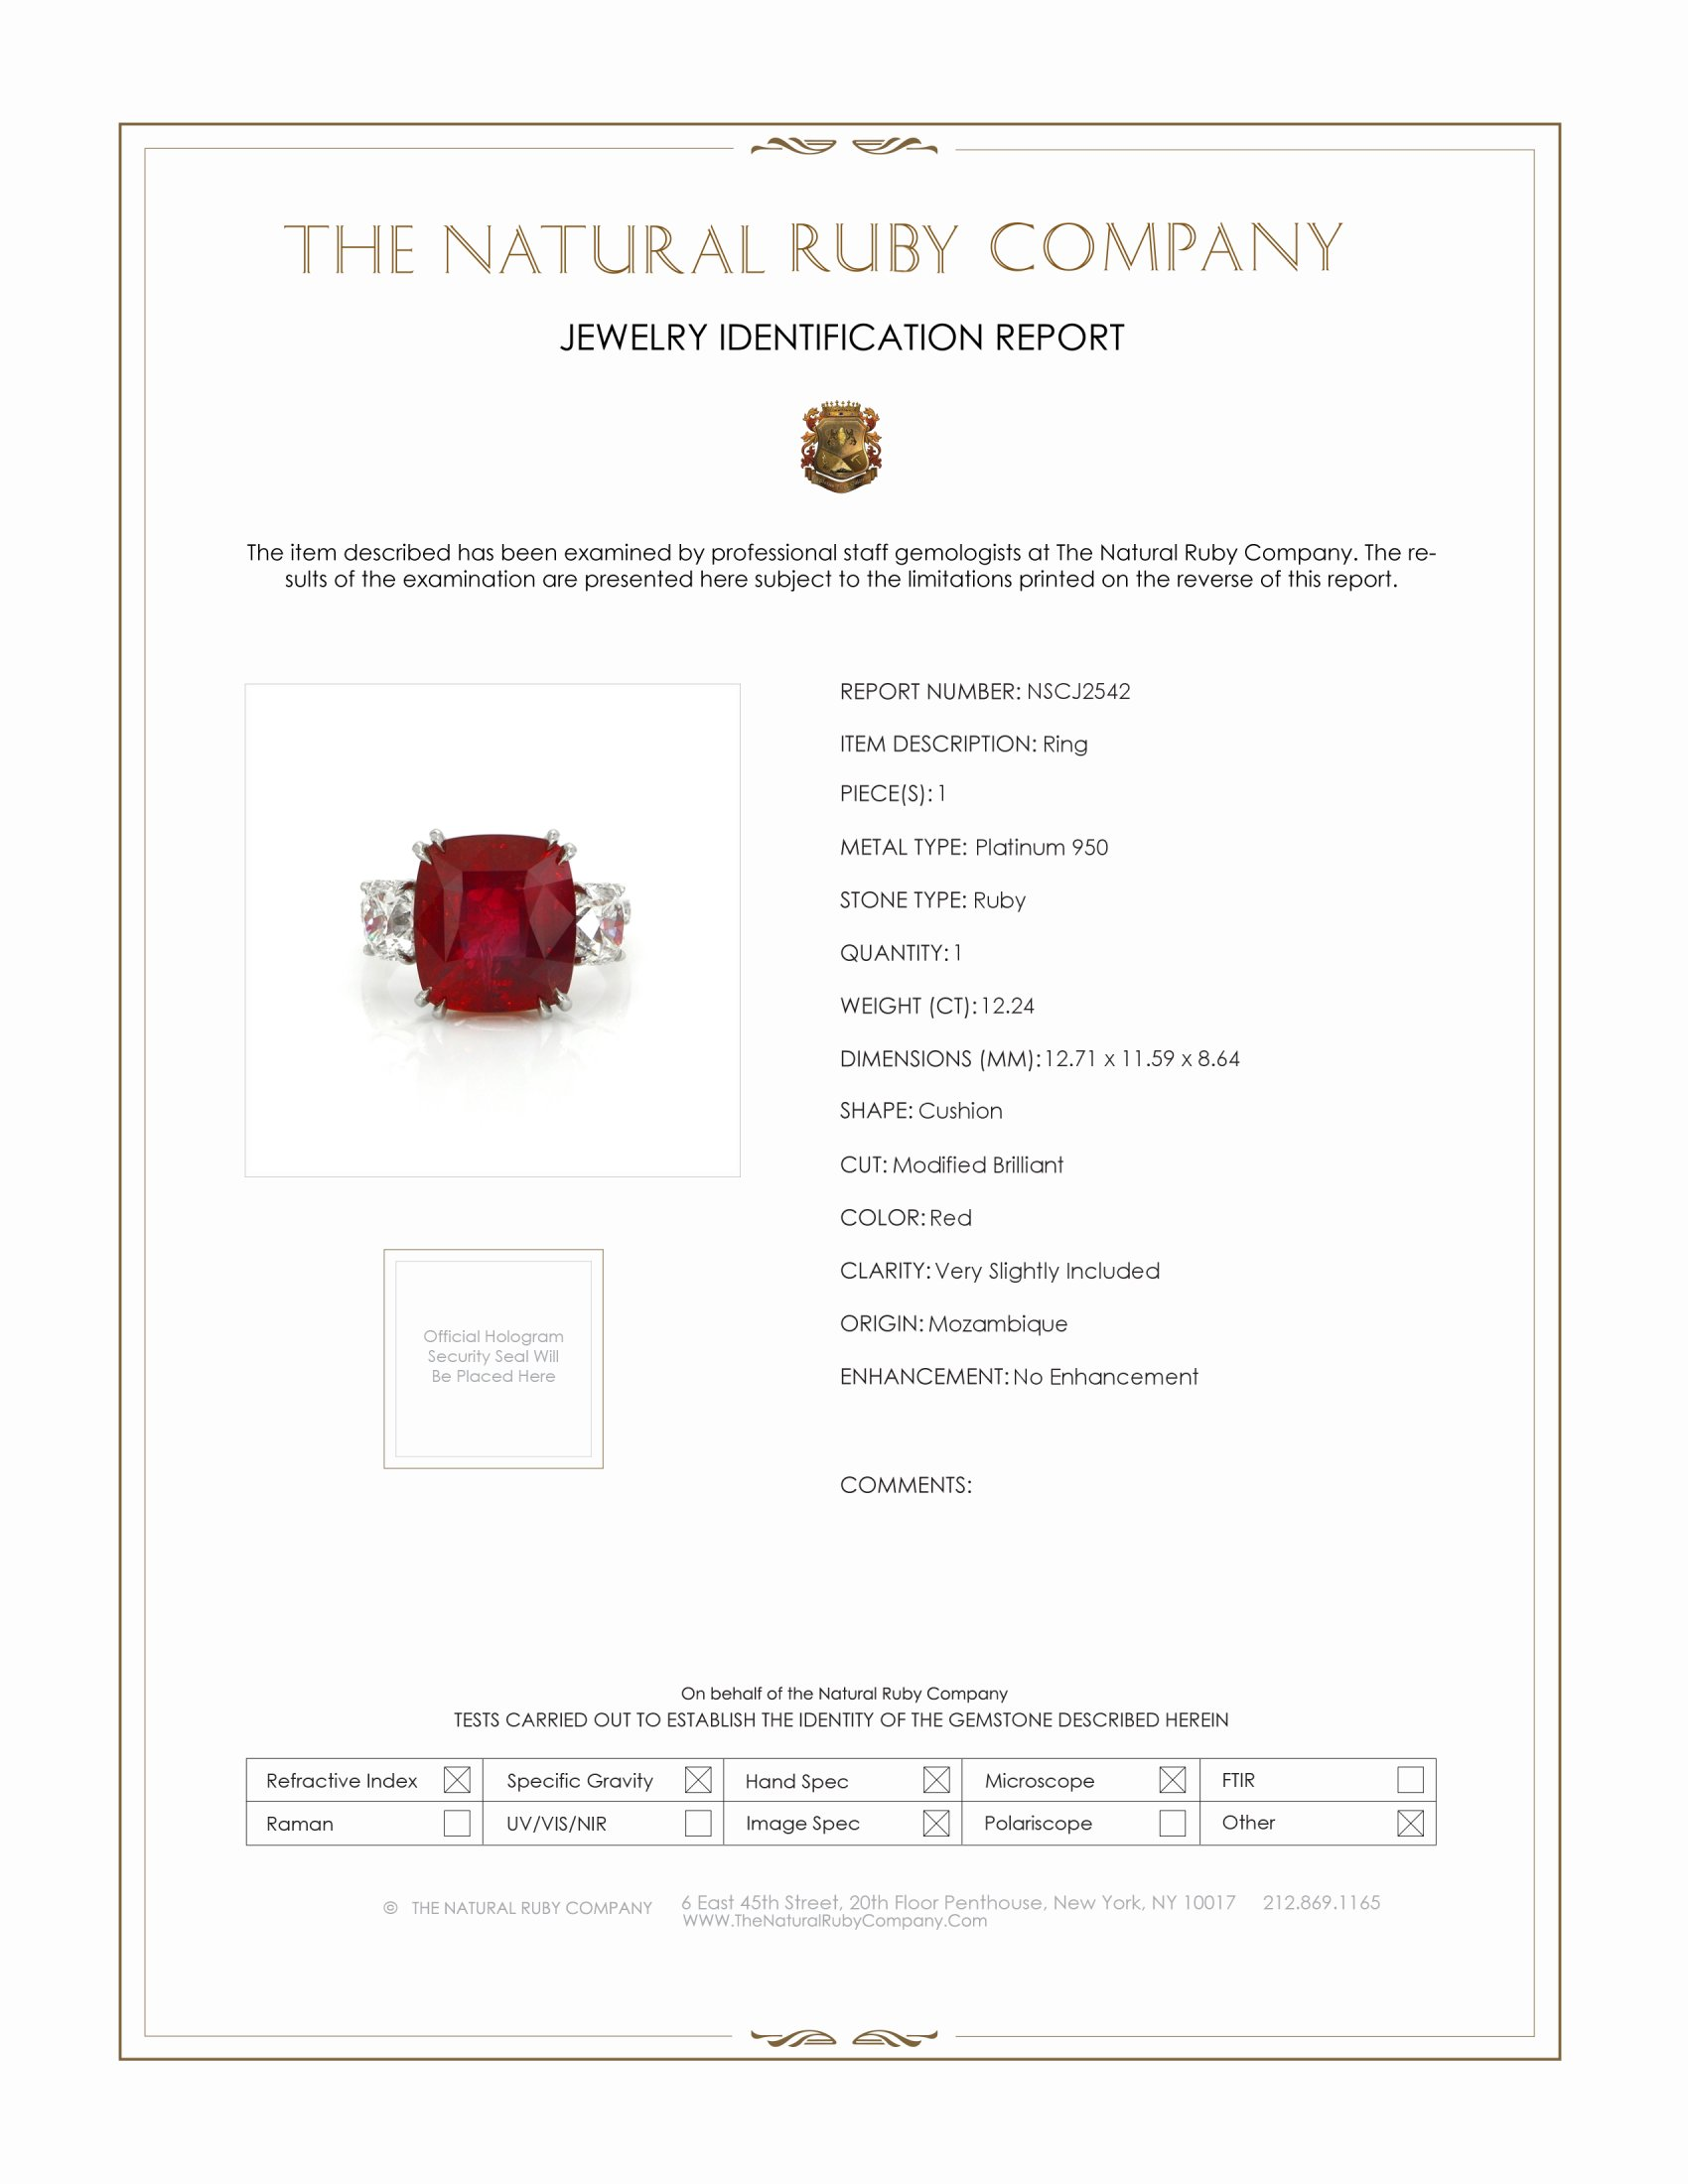 12.24ct Ruby Ring Certification